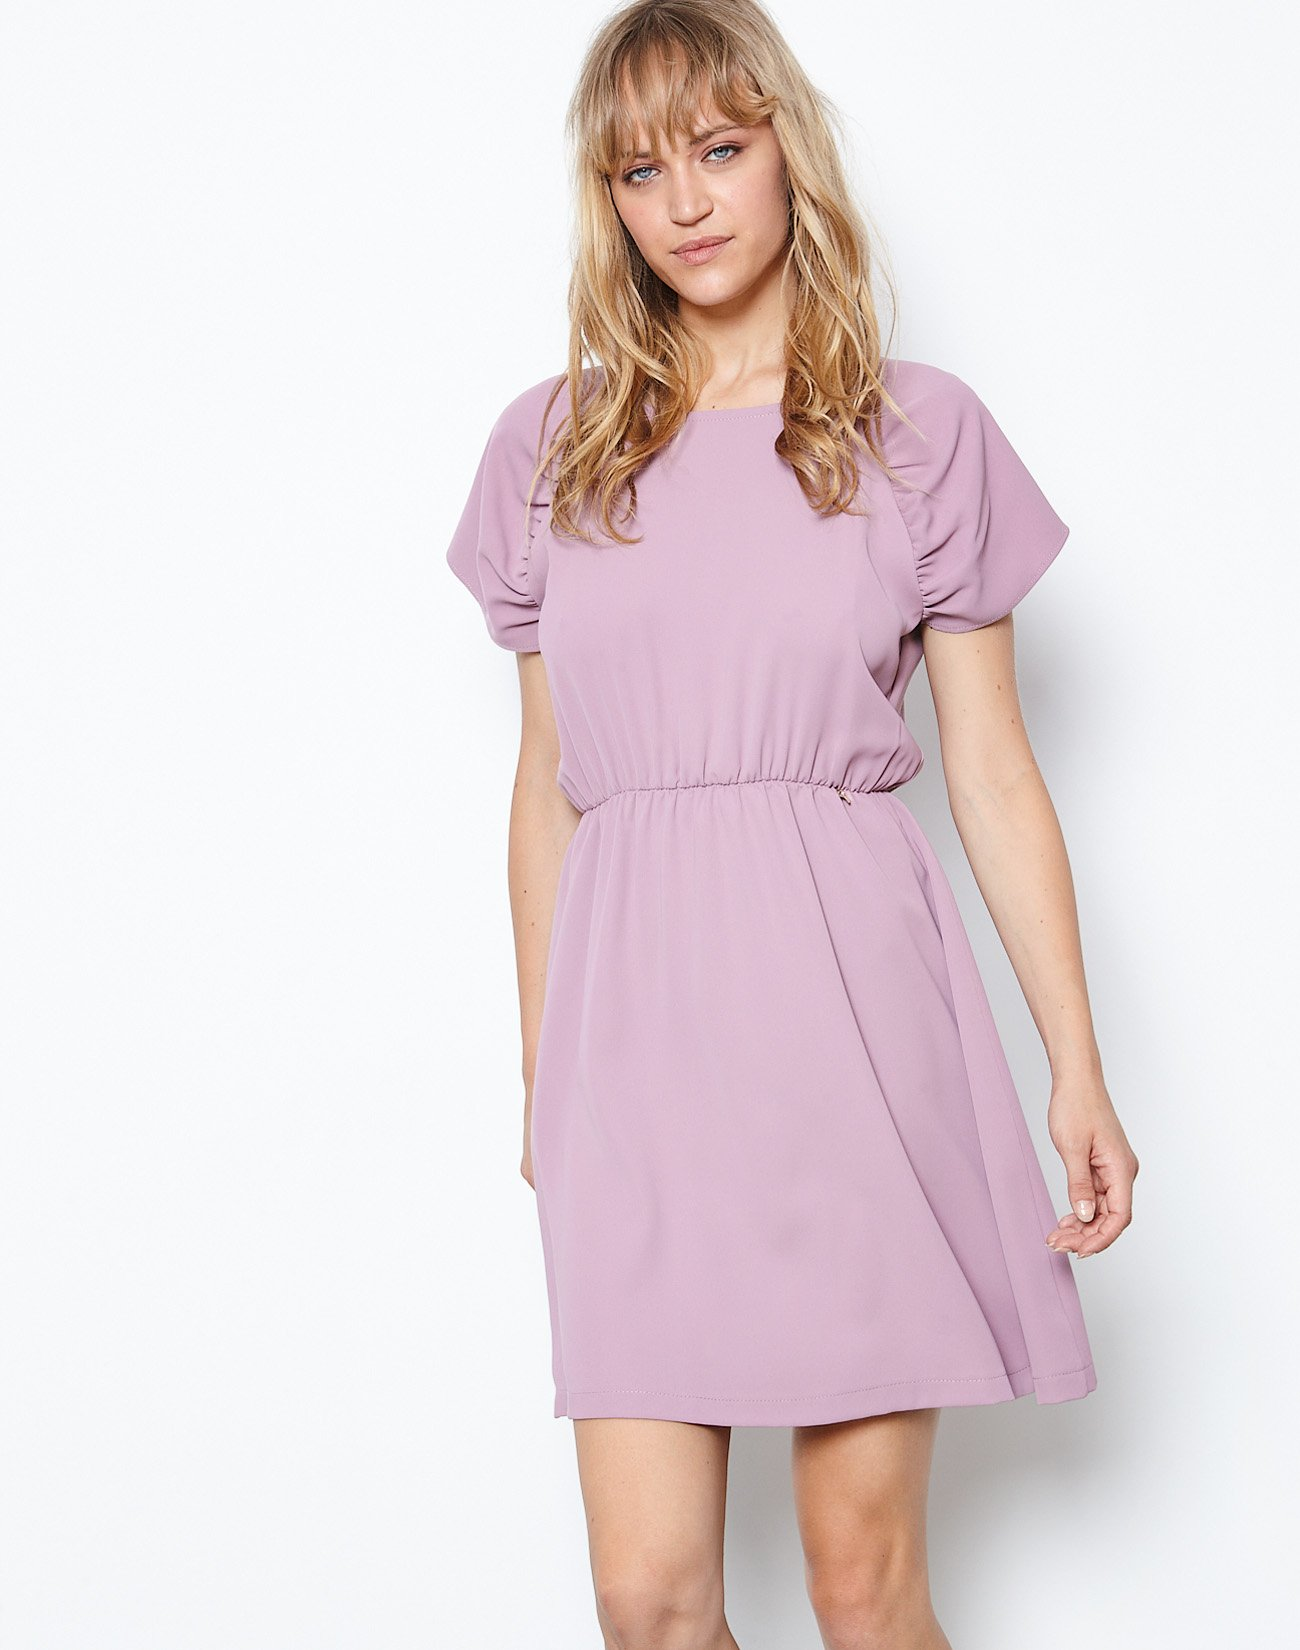 Mini dress with buttons